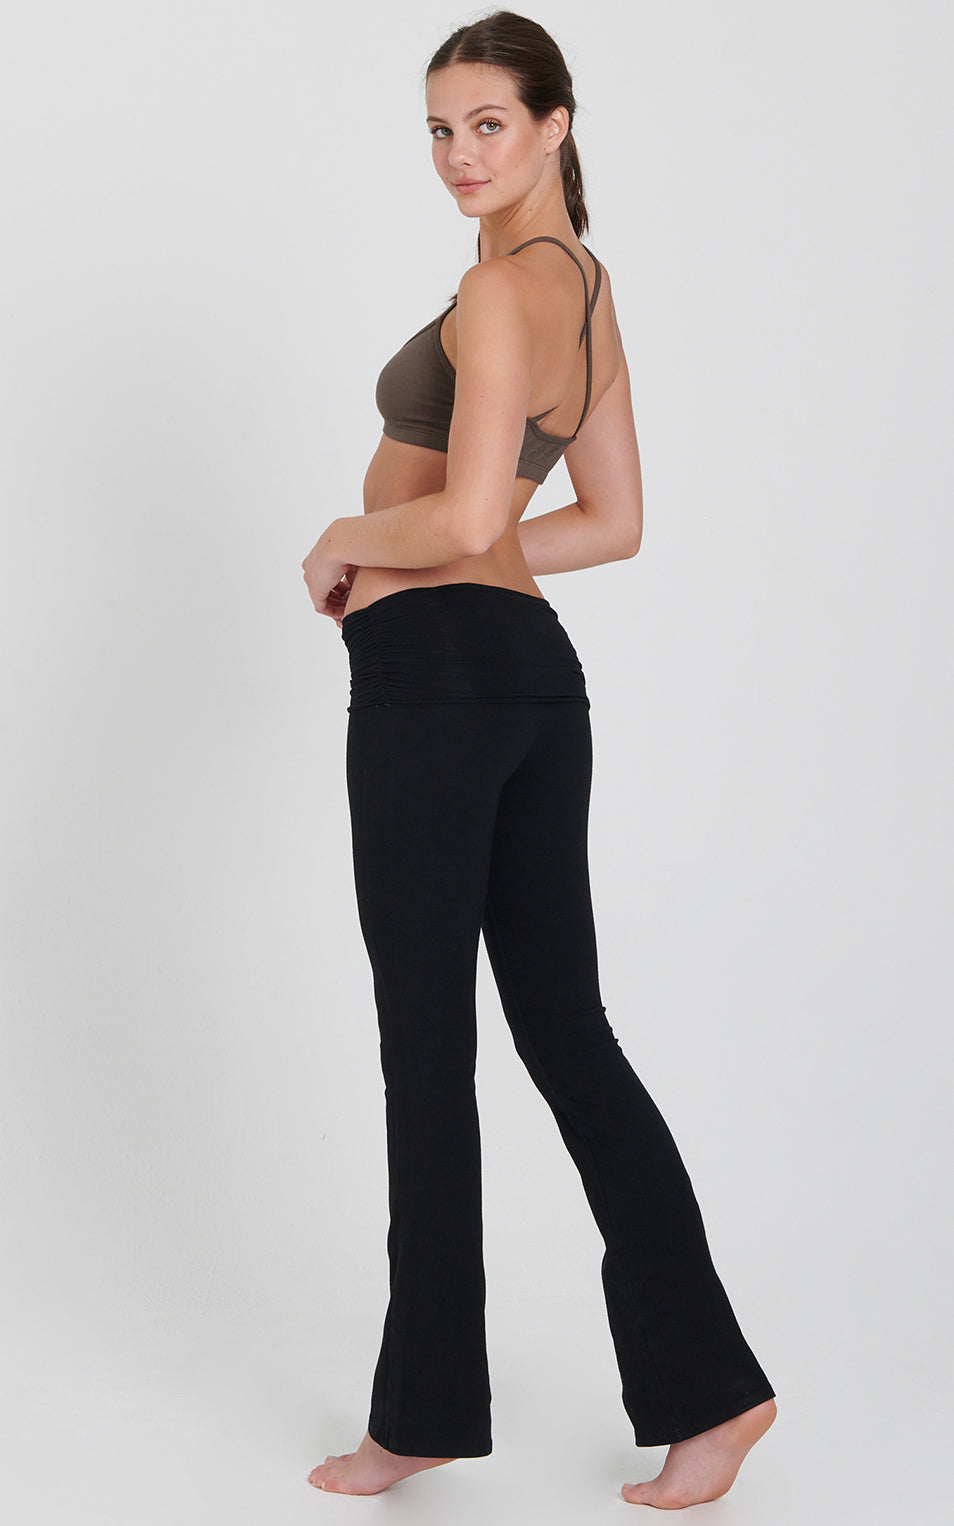 Black Organic cotton lycra ruched waist bootleg flare yoga activewear pant